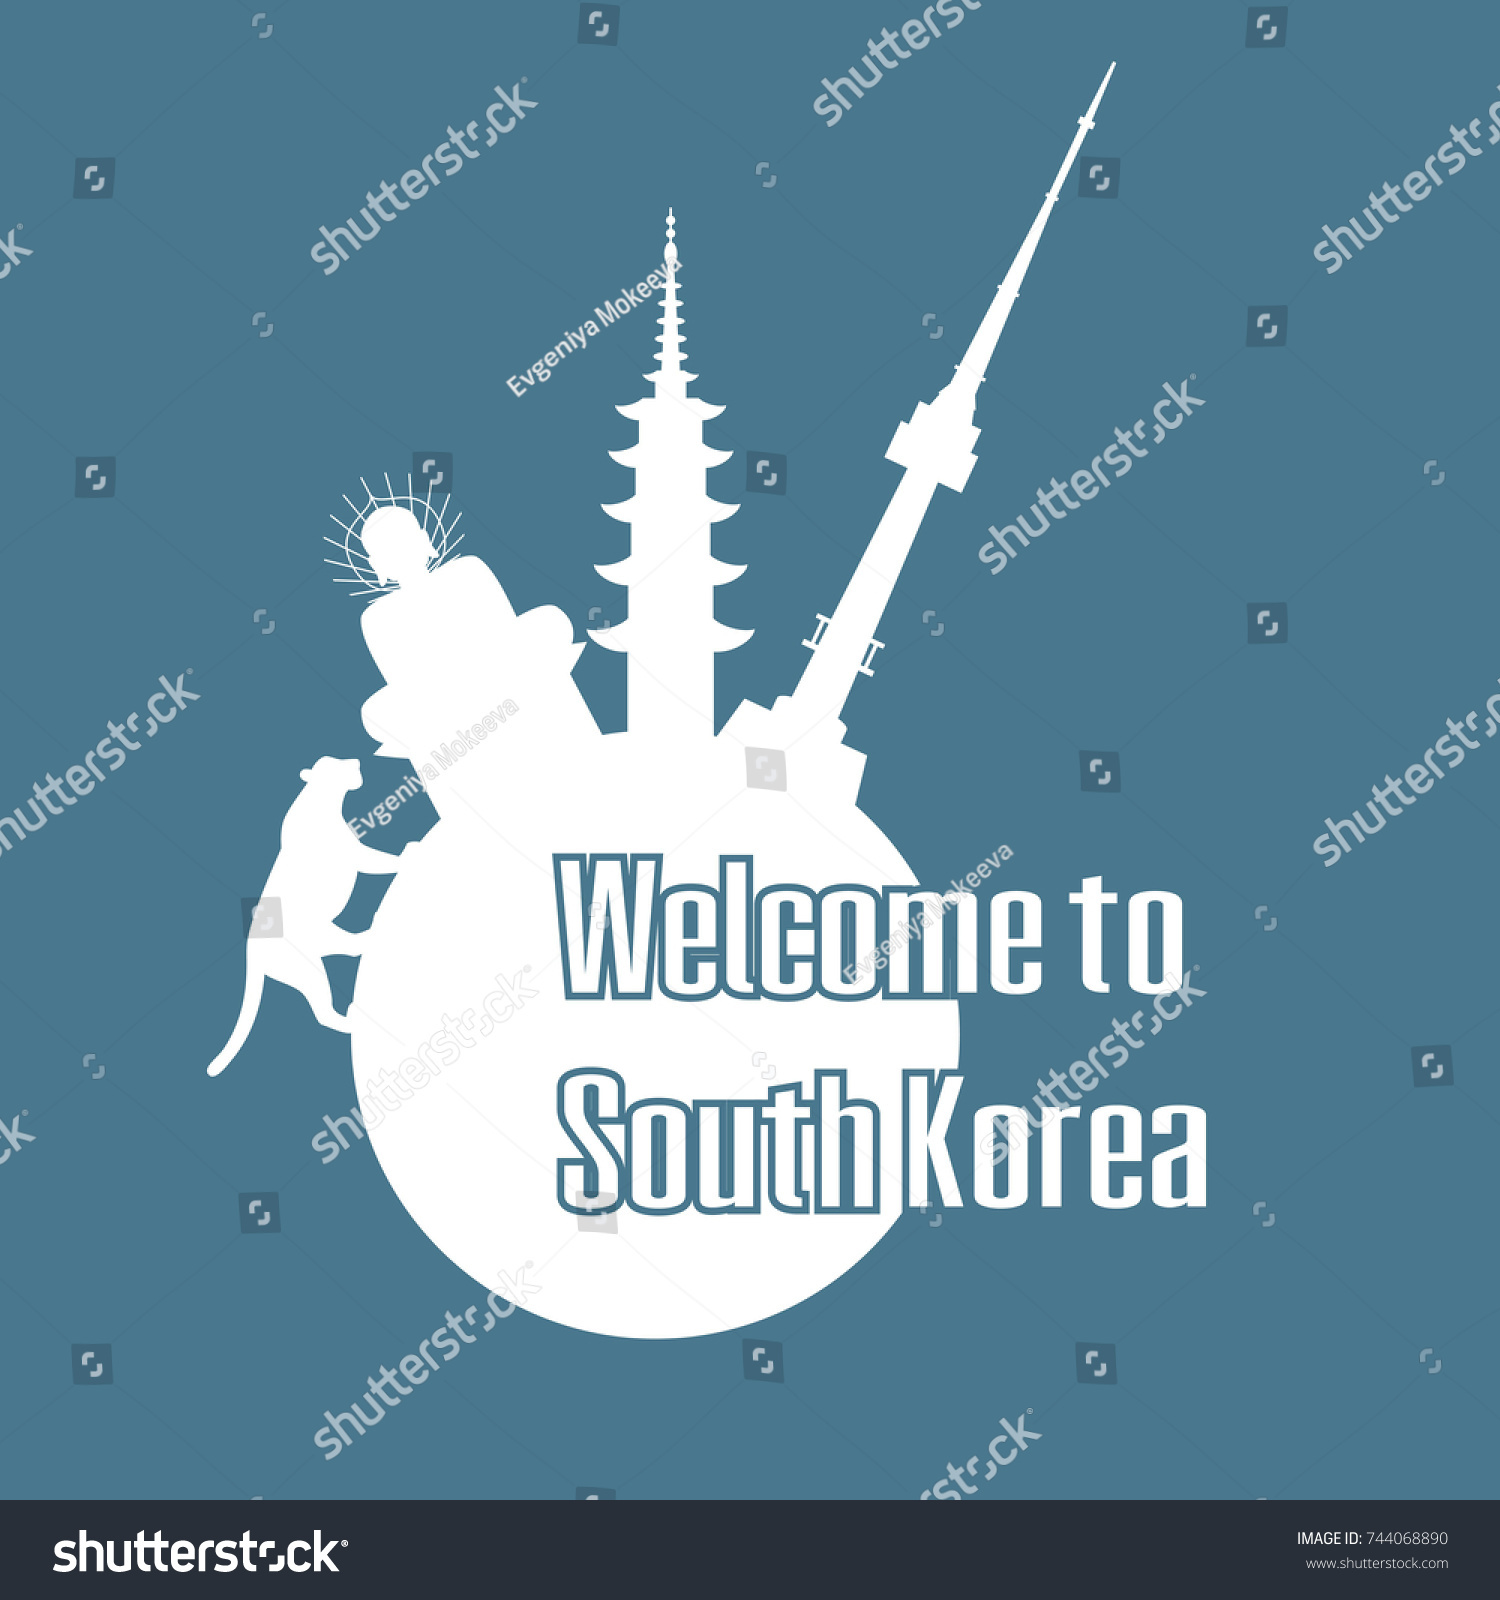 Welcome south korea poster symbols south stock vector 744068890 welcome to south korea poster with symbols of south korea vector illustration biocorpaavc Gallery